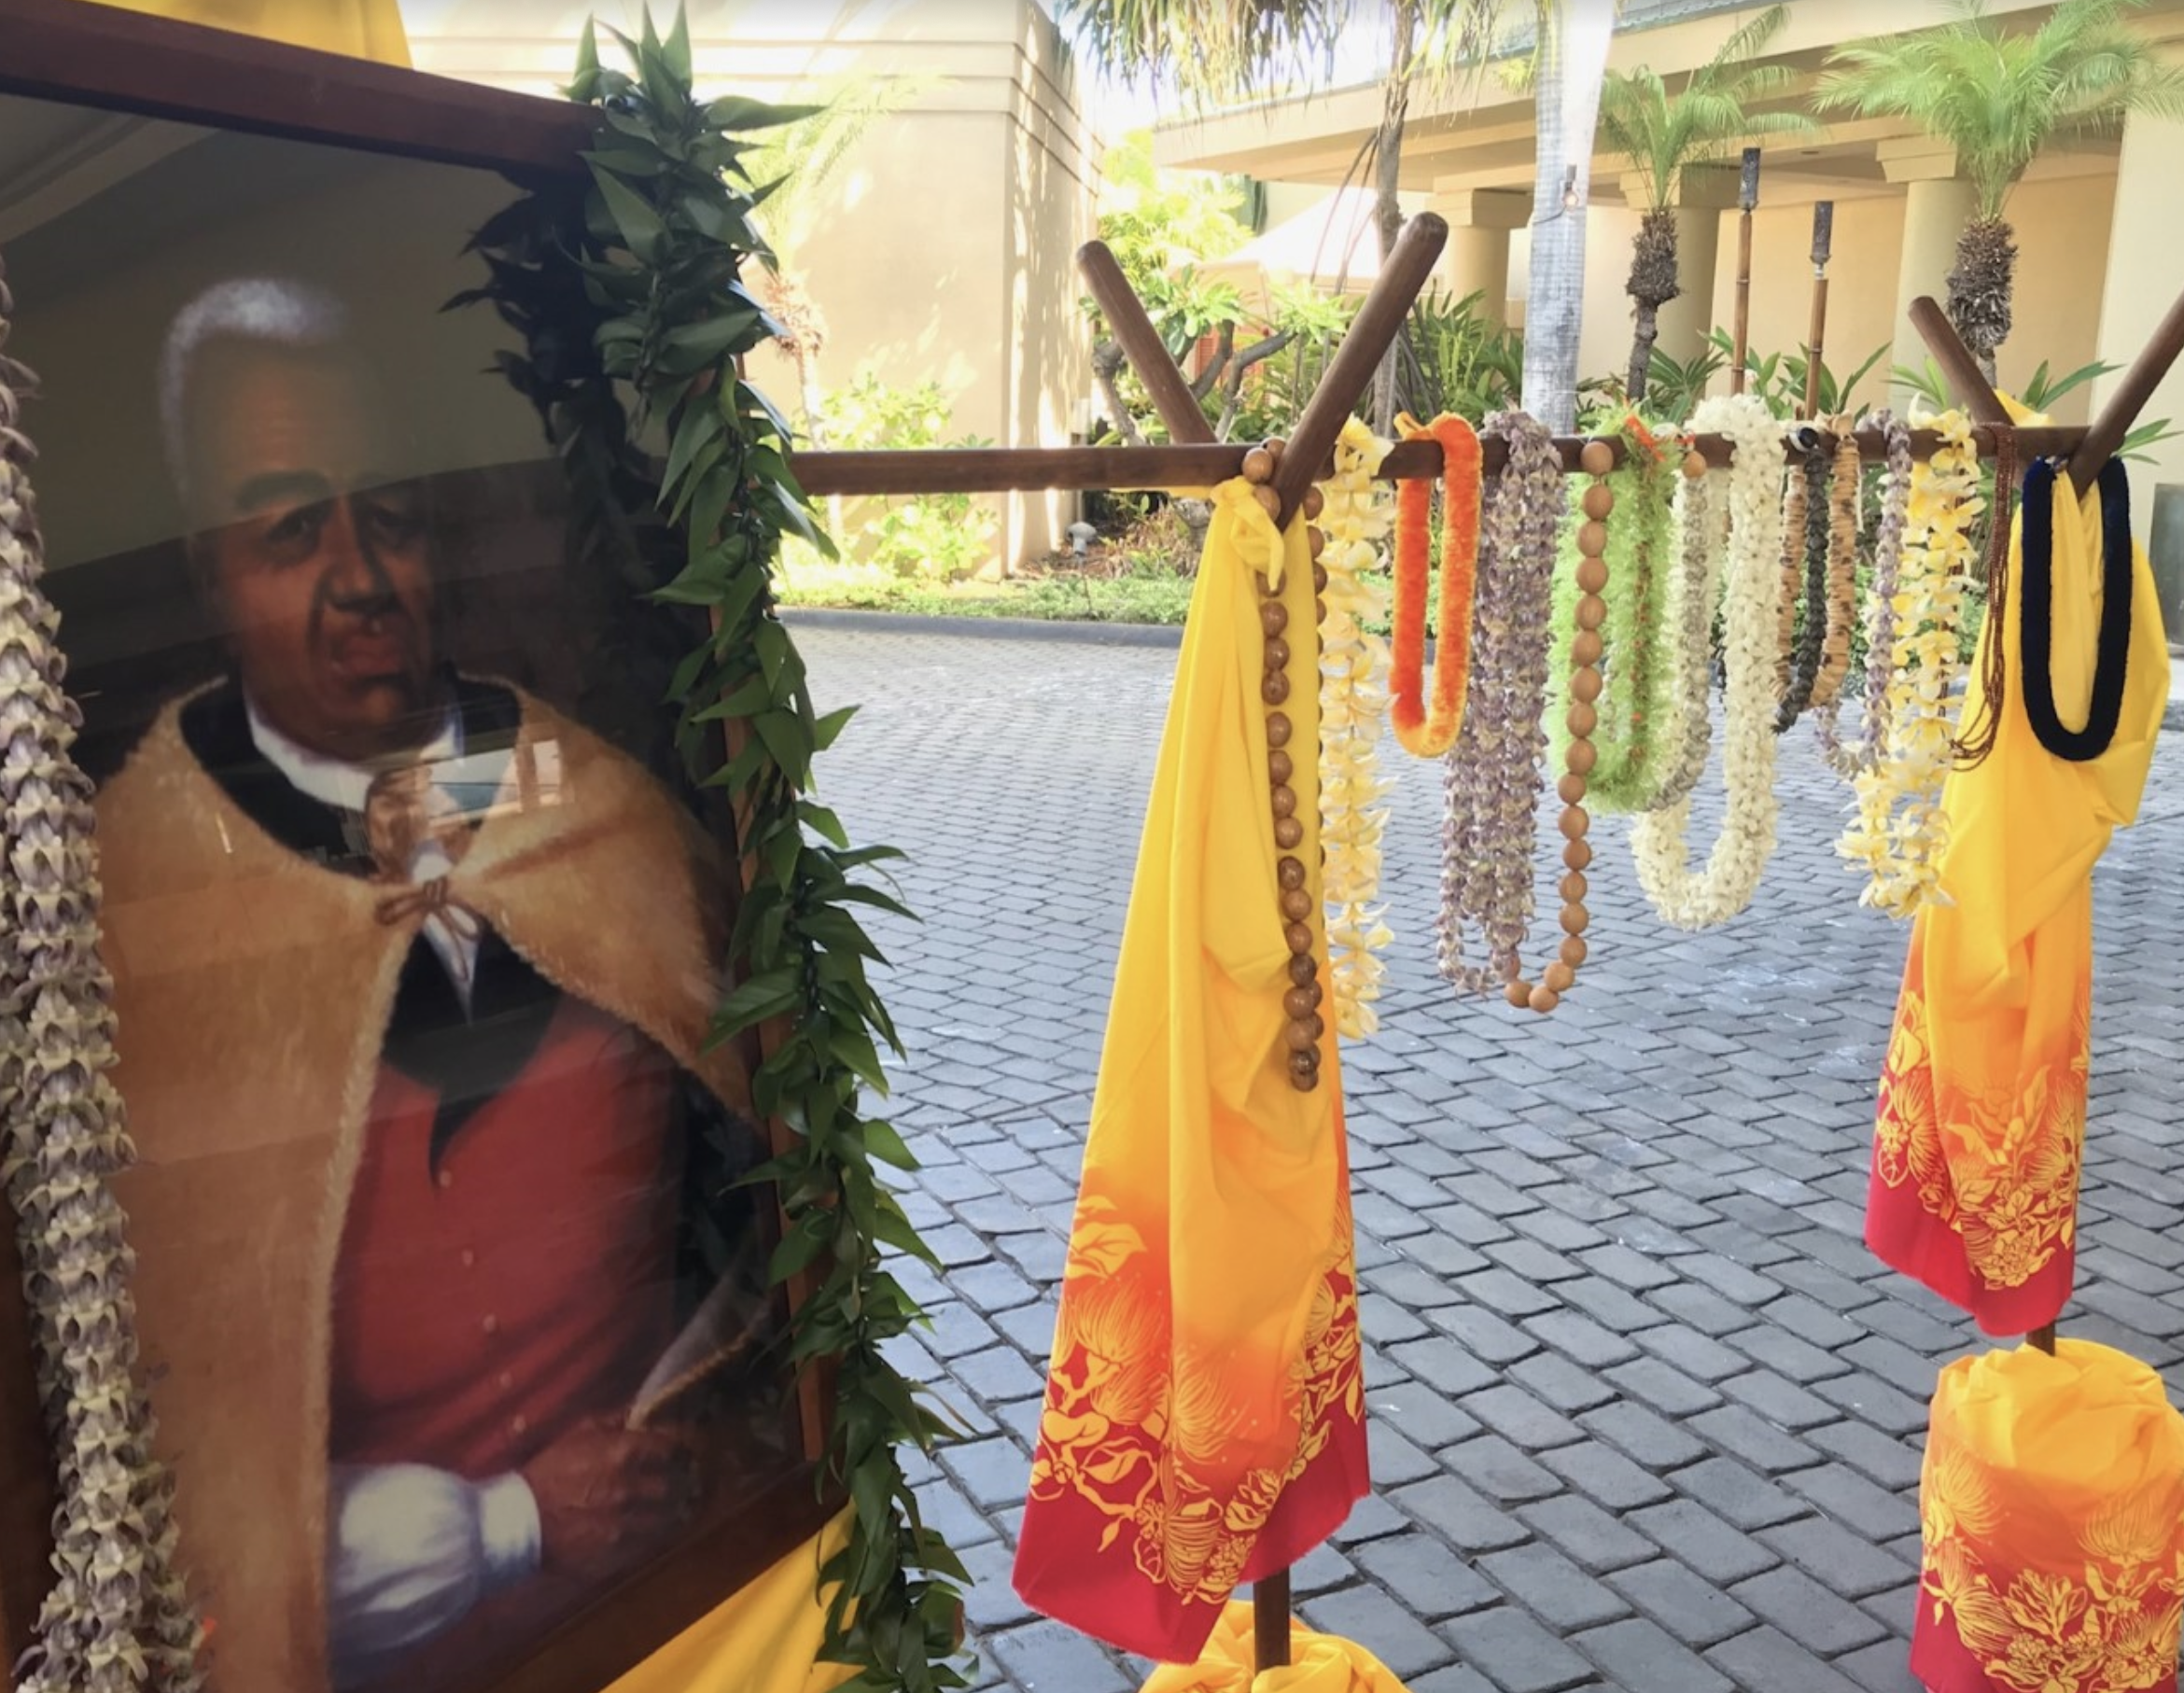 Four Seasons Resort Maui Gifts Employees with Food, Live Music and Hula in Honor of King Kamehameha I